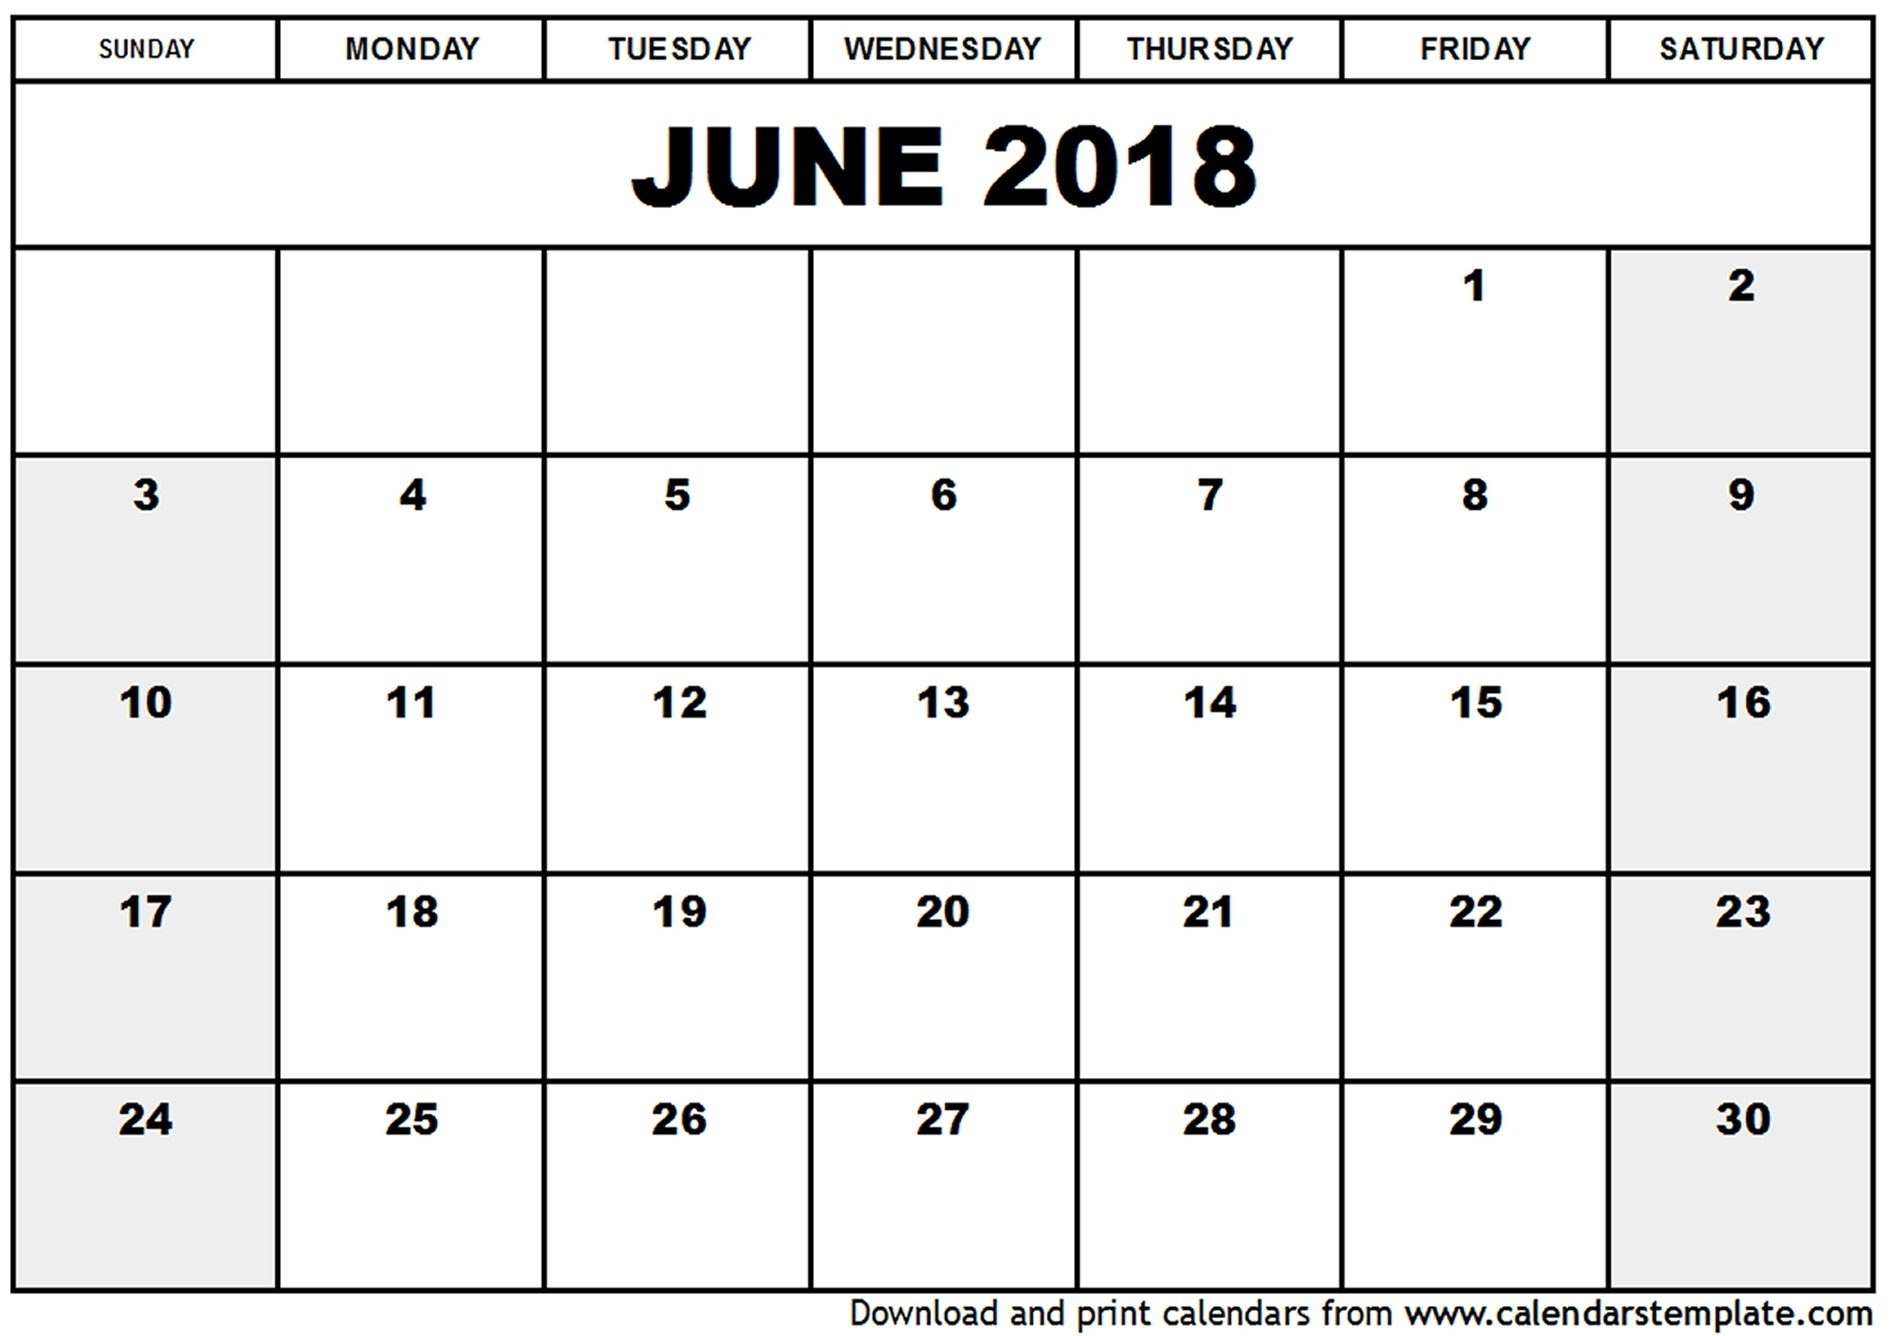 Free Printable Calendars 2018 Templates 026 Calendar June